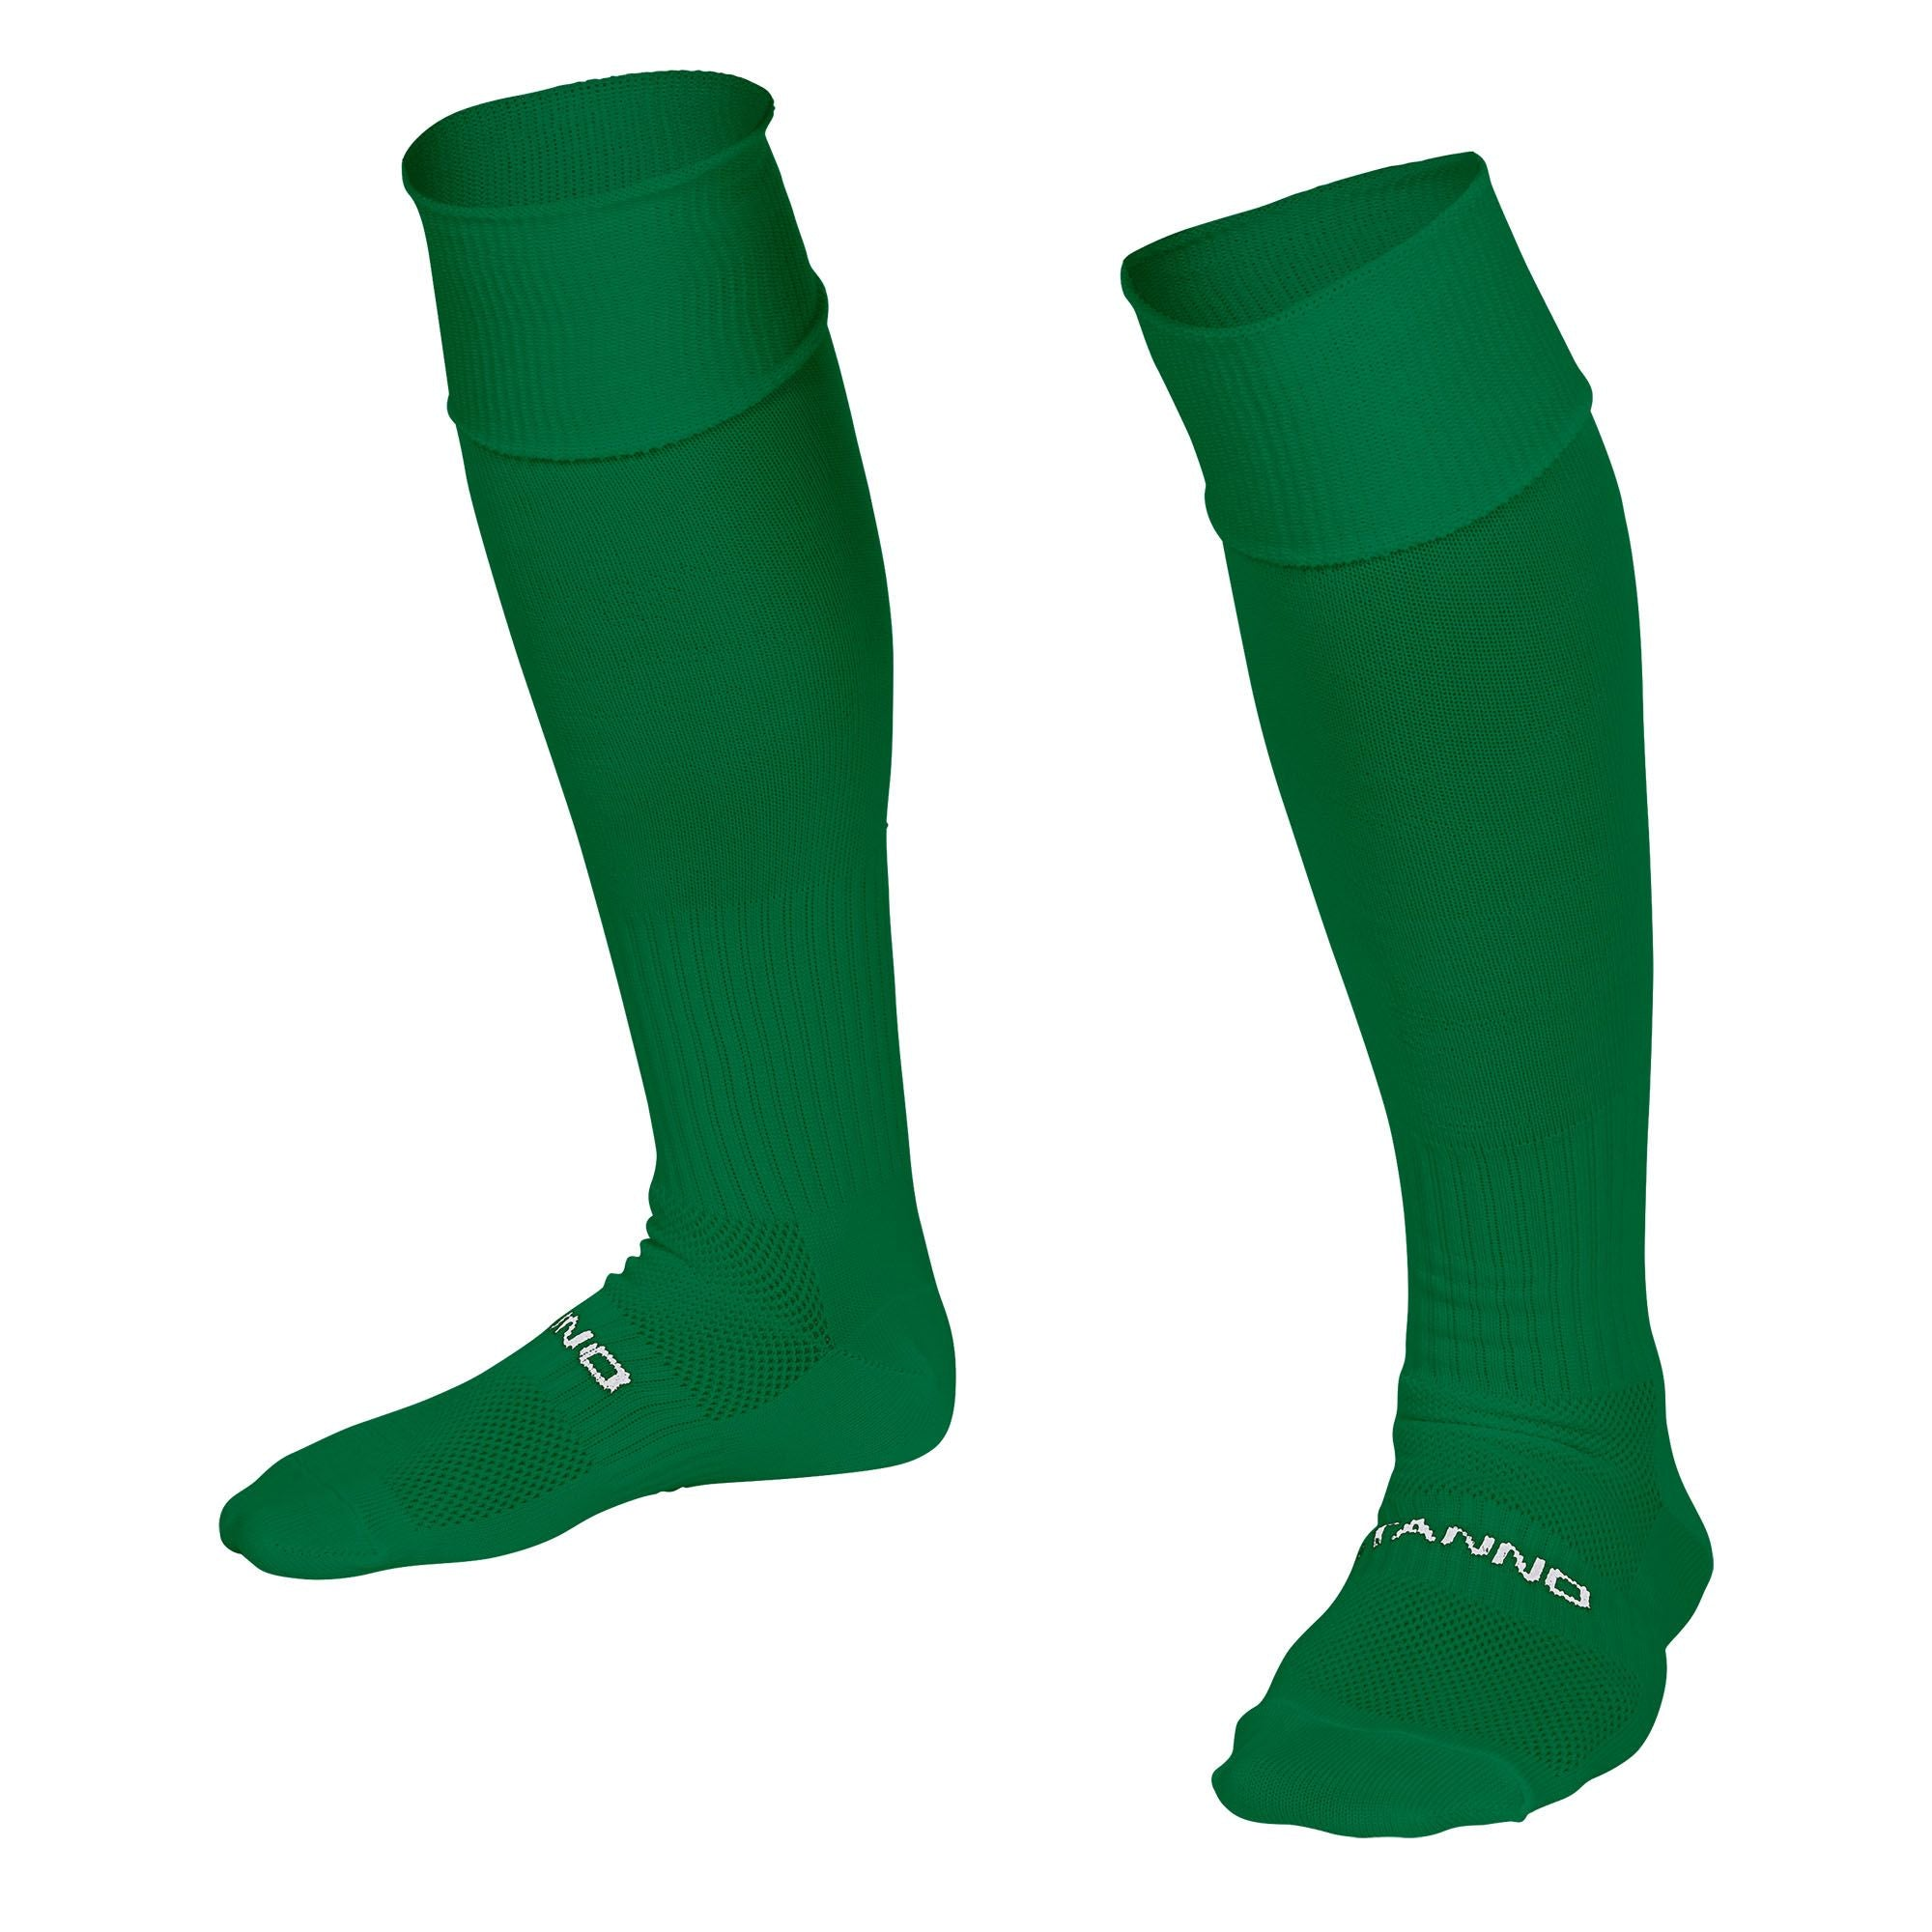 Stanno Park sock in green with Stanno text across the top of the foot.